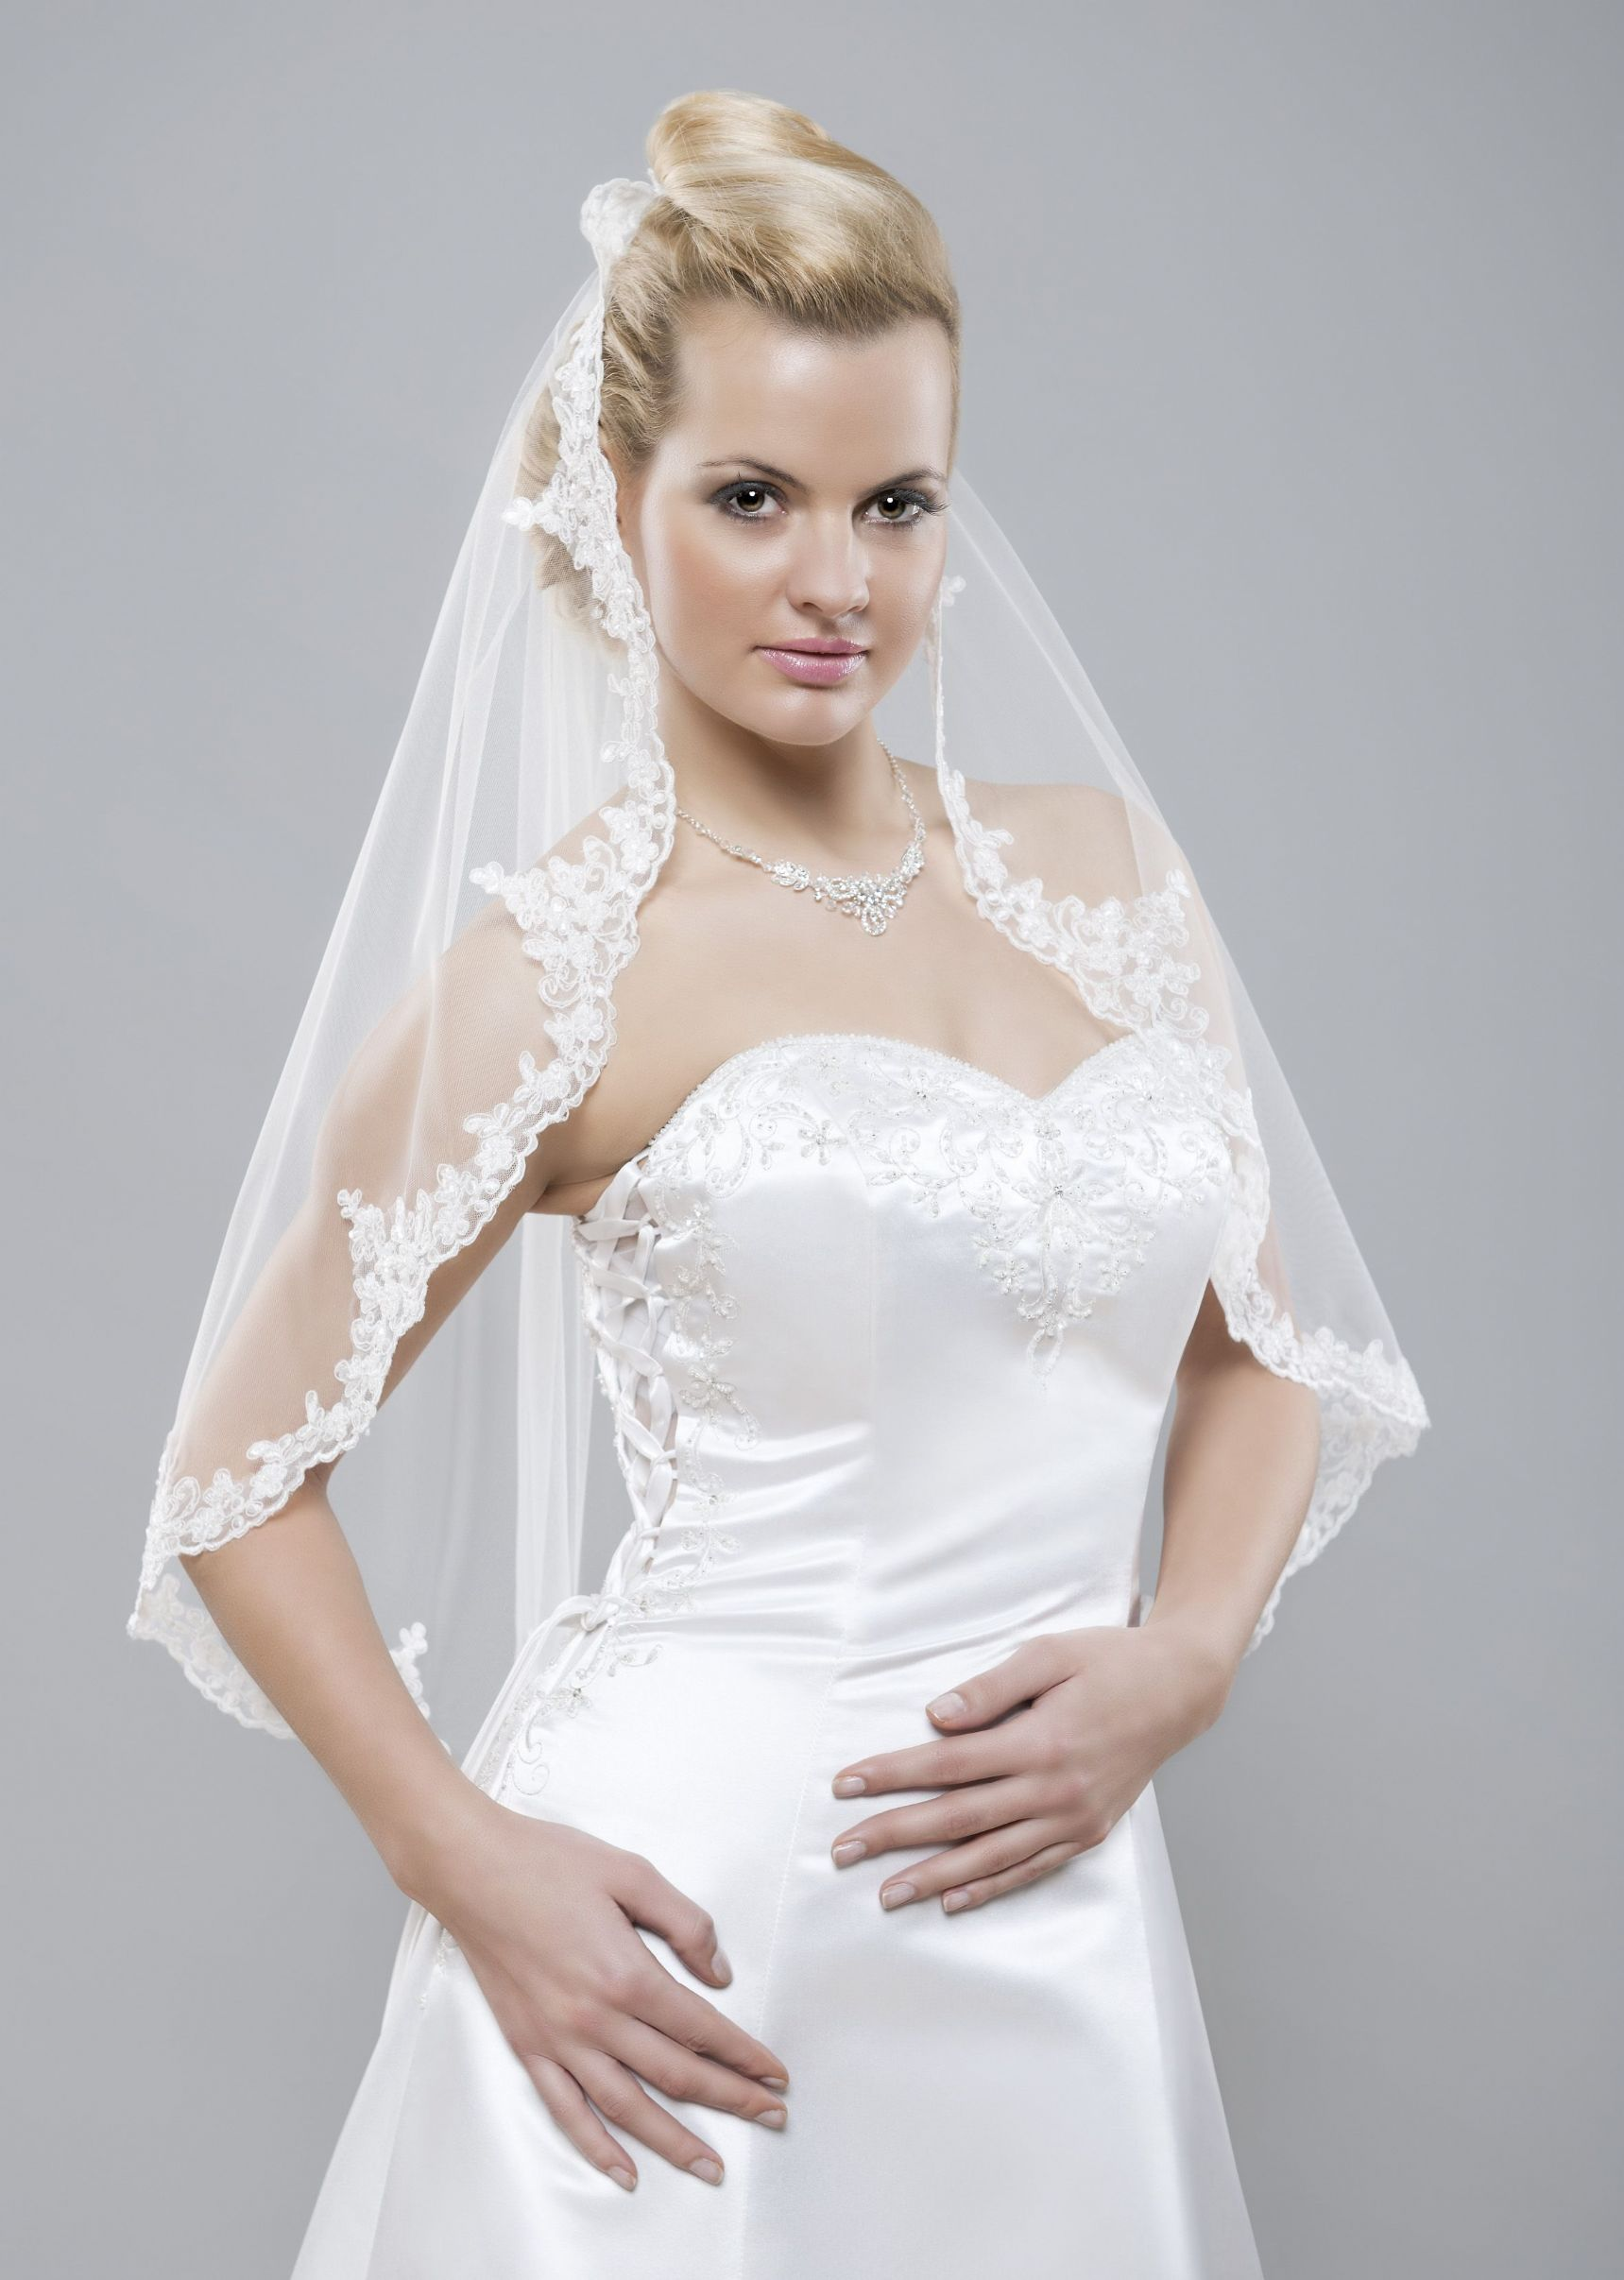 bridal veil Choose from traditional two-tiered veils to romantic single tier veils with lace trim to modern, edgy raw edge veils update a classic gown with a lovely beaded wedding veil or use a understated veil to add a touch of elegance to an ornate wedding gown.